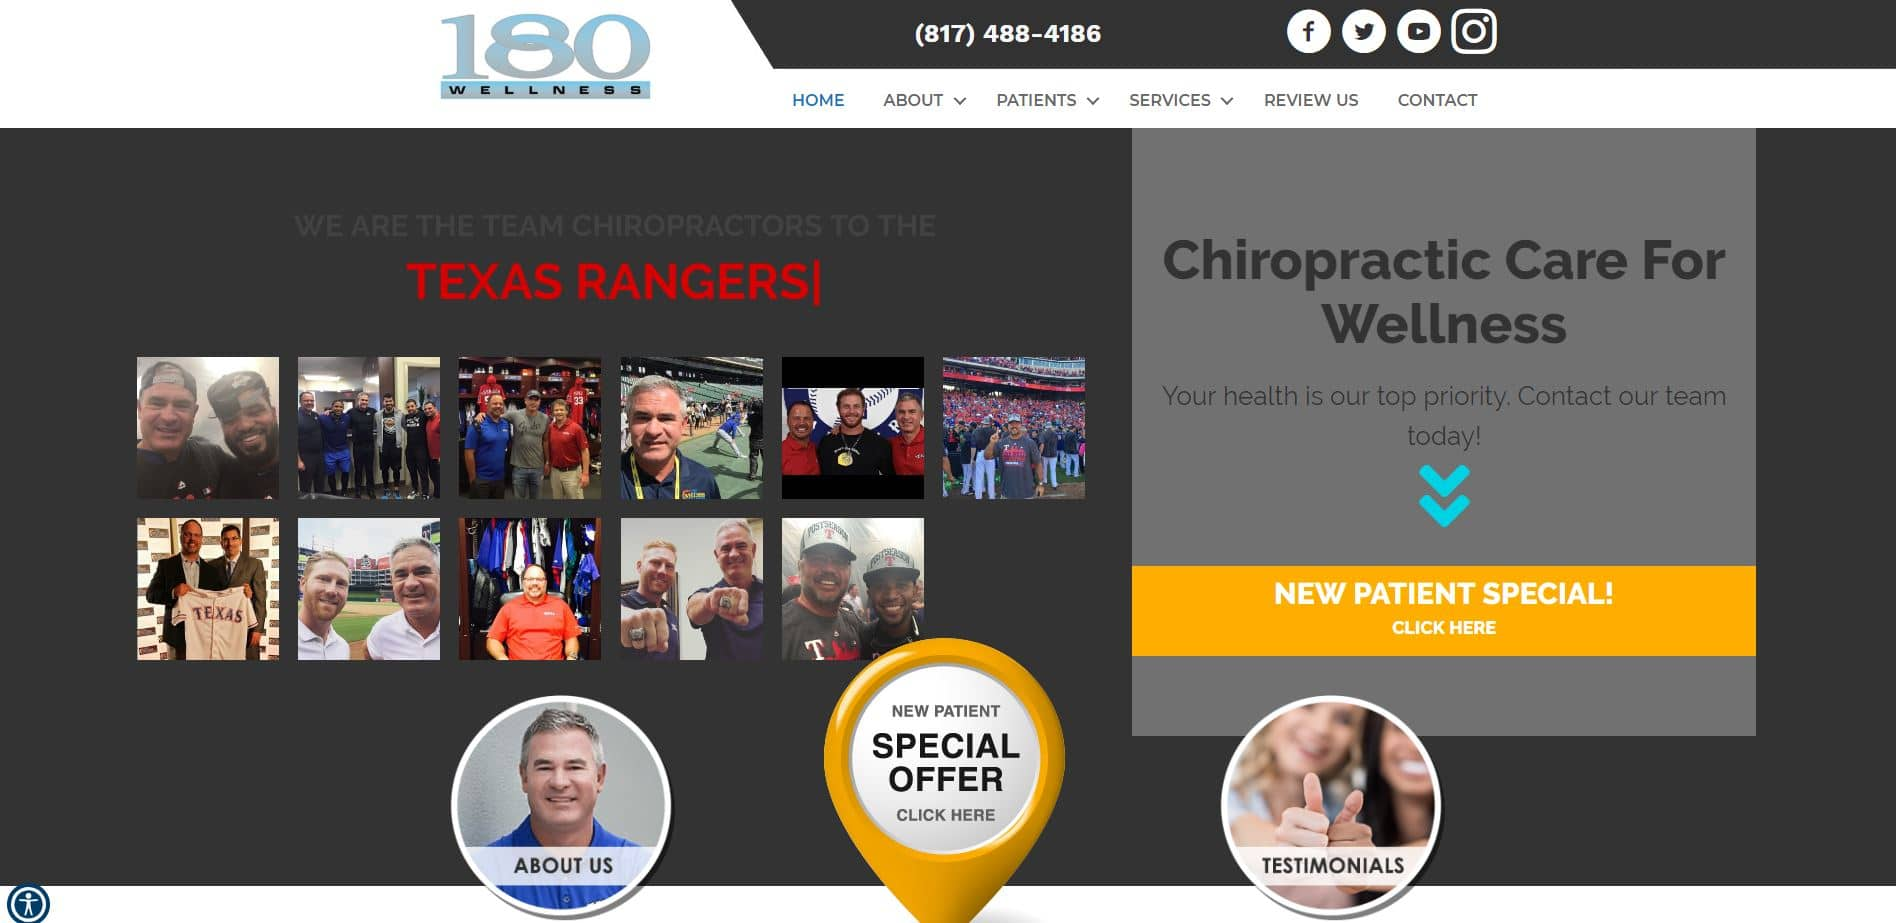 Chiropractor in Southlake